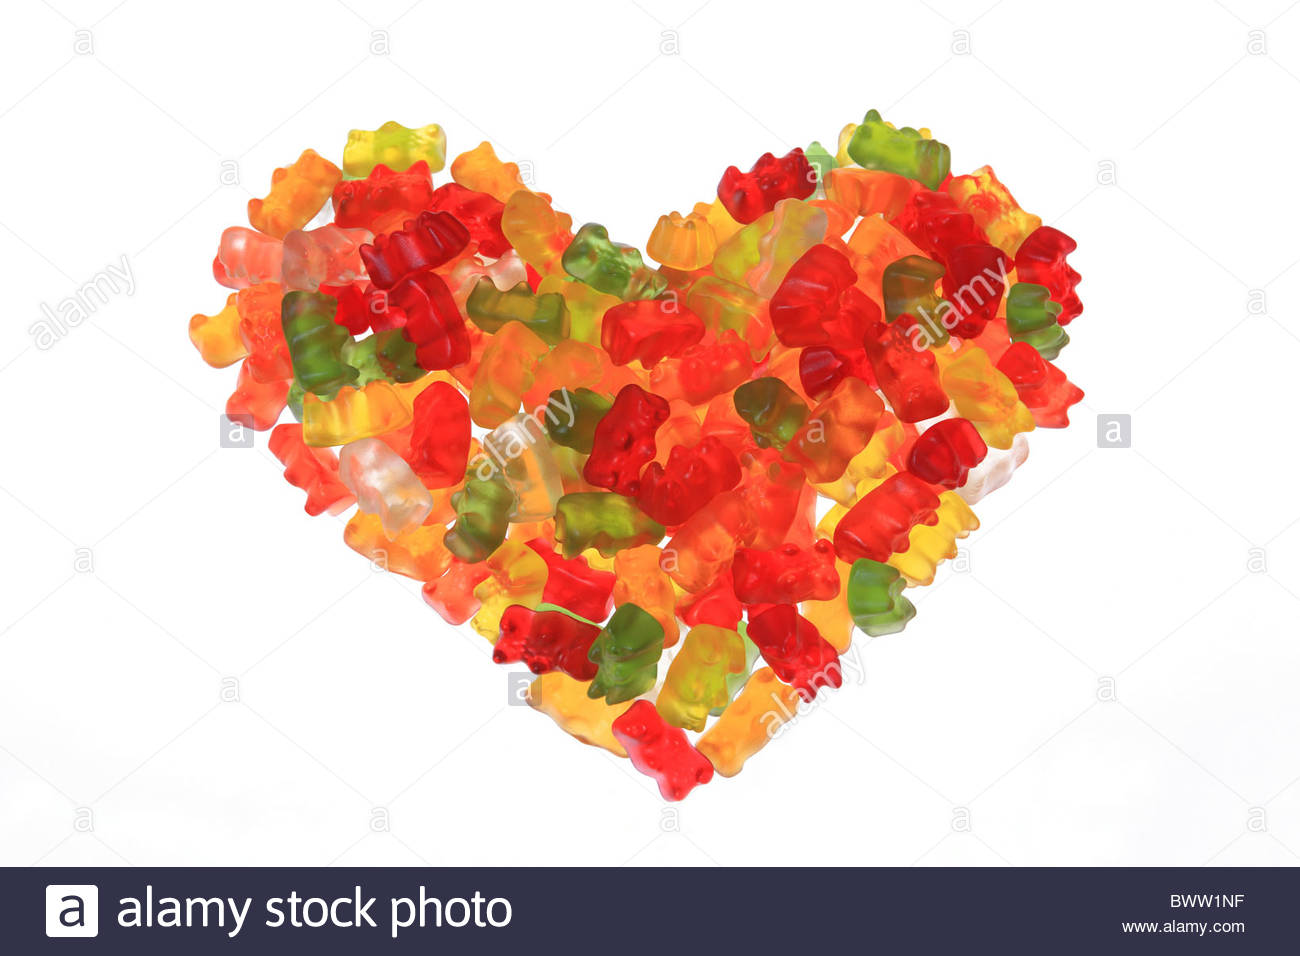 Candy Gummi Bear Jelly Baby Sweets Candy Bright Colorfully Sweet.